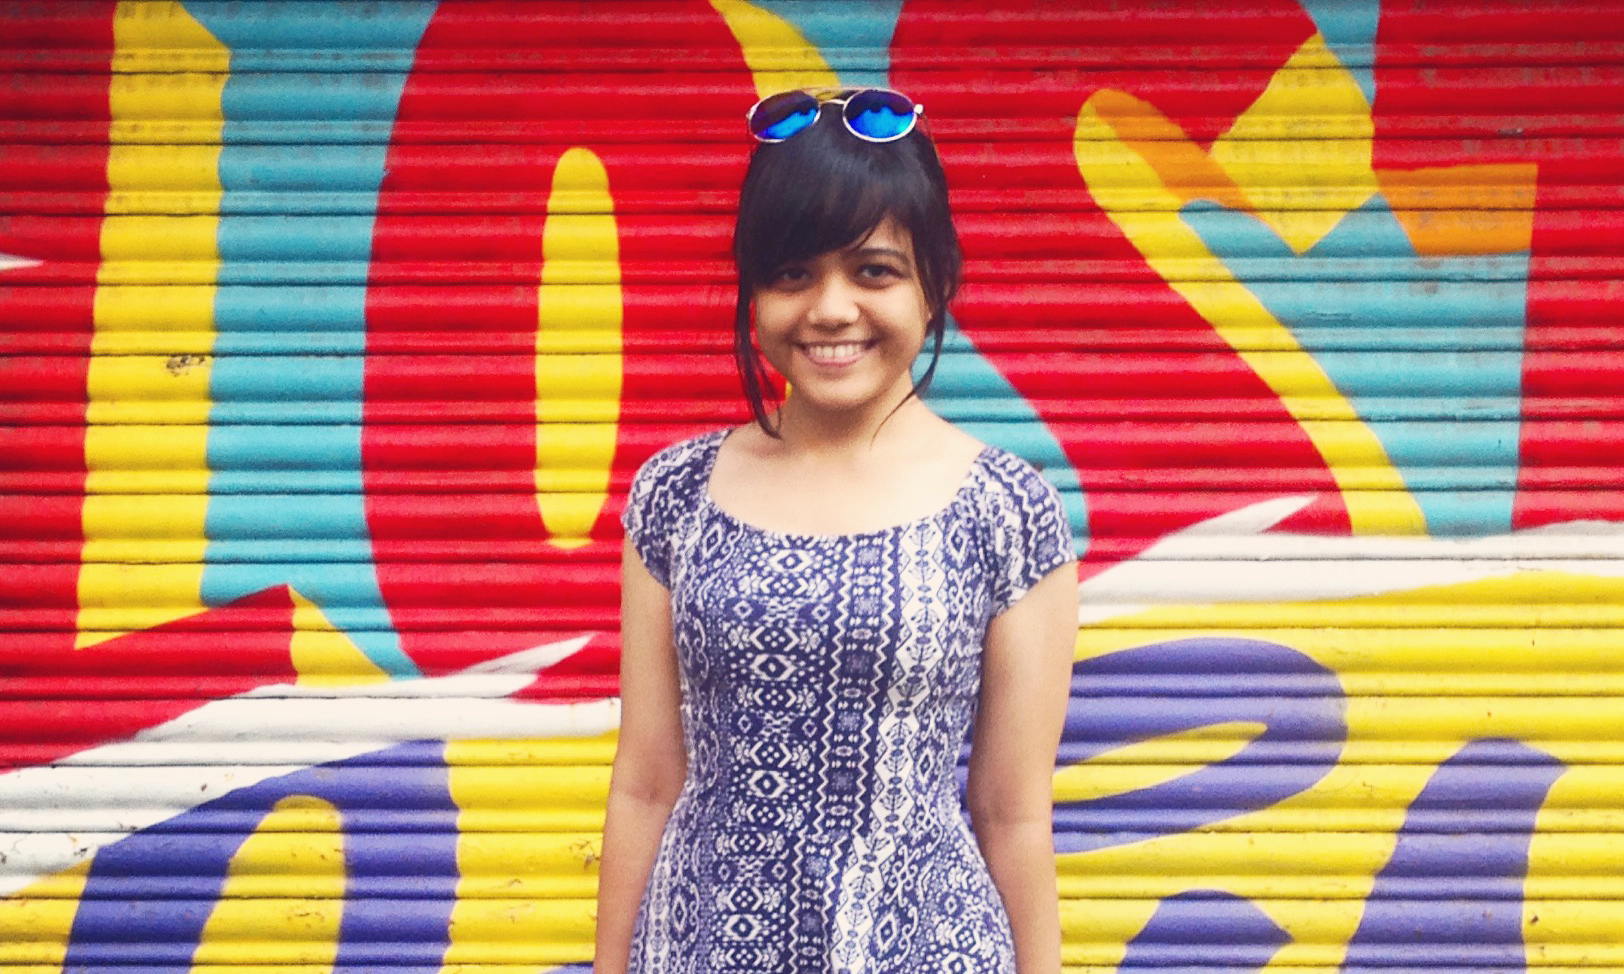 Pranita Kocharekar stands in front of a colourful garage door and smiles for the camera